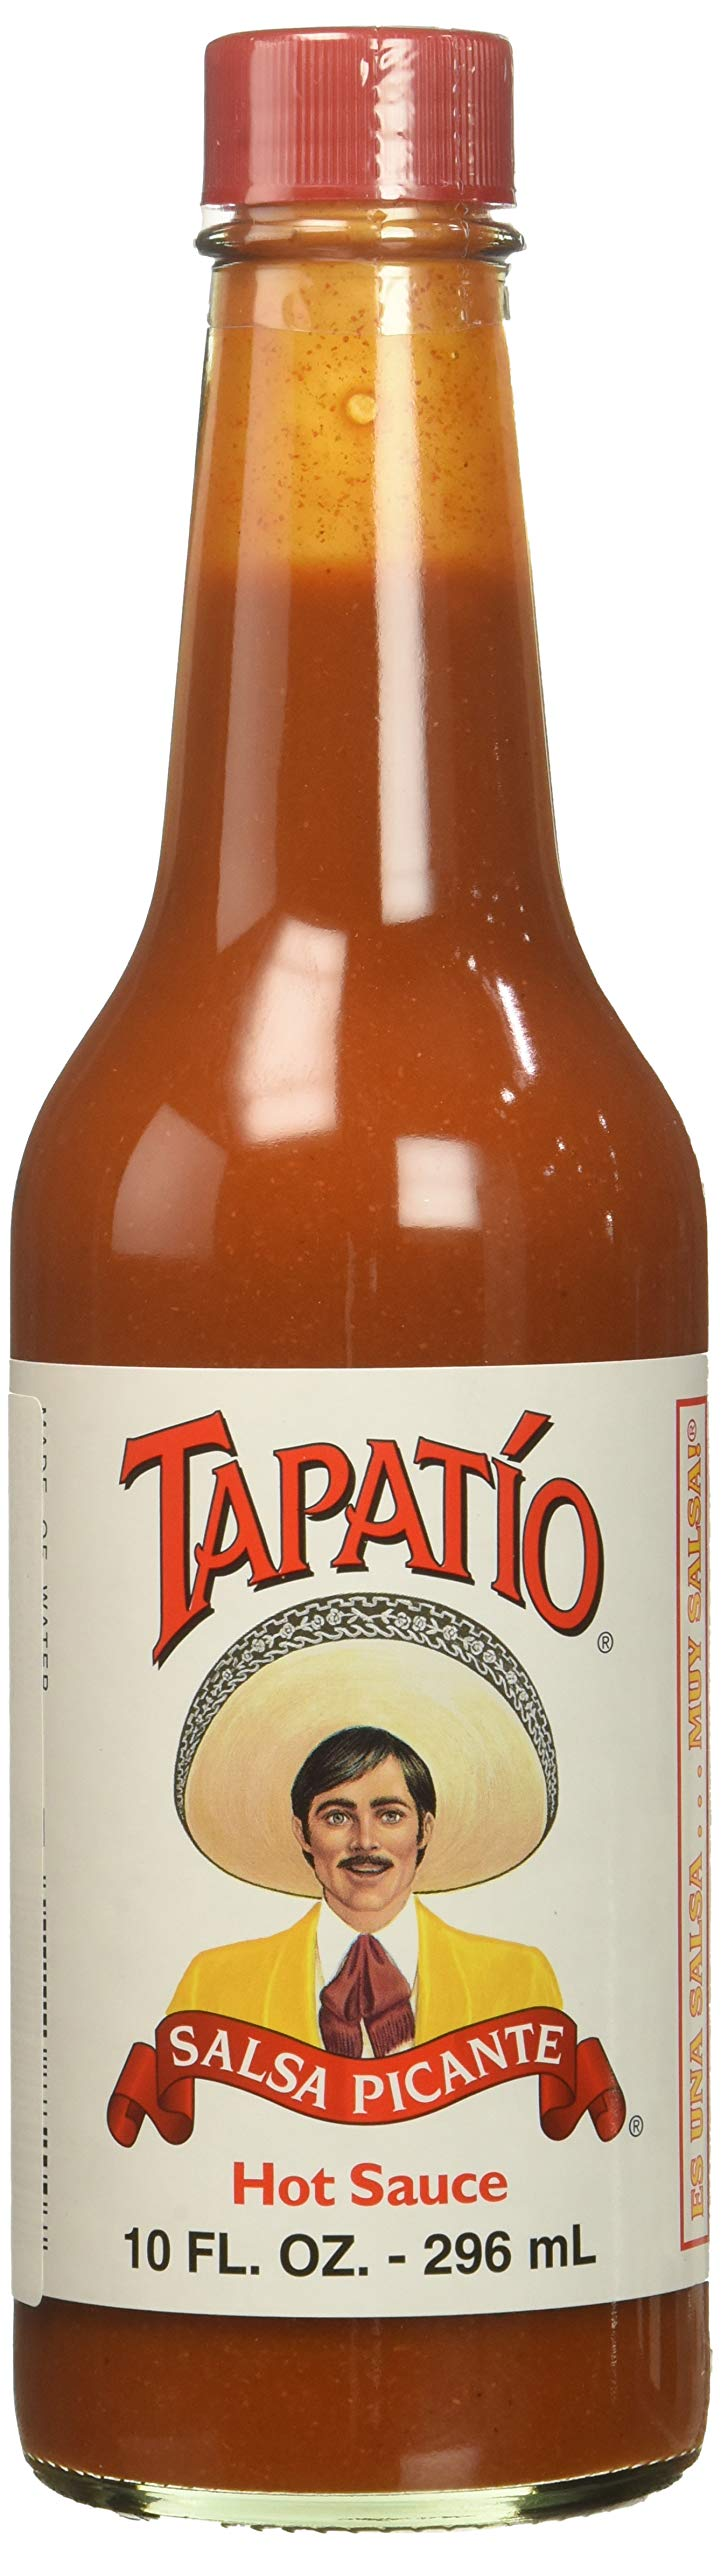 Tapatio Salsa Picante Hot Sauce, 10 oz - (Pack of 3)